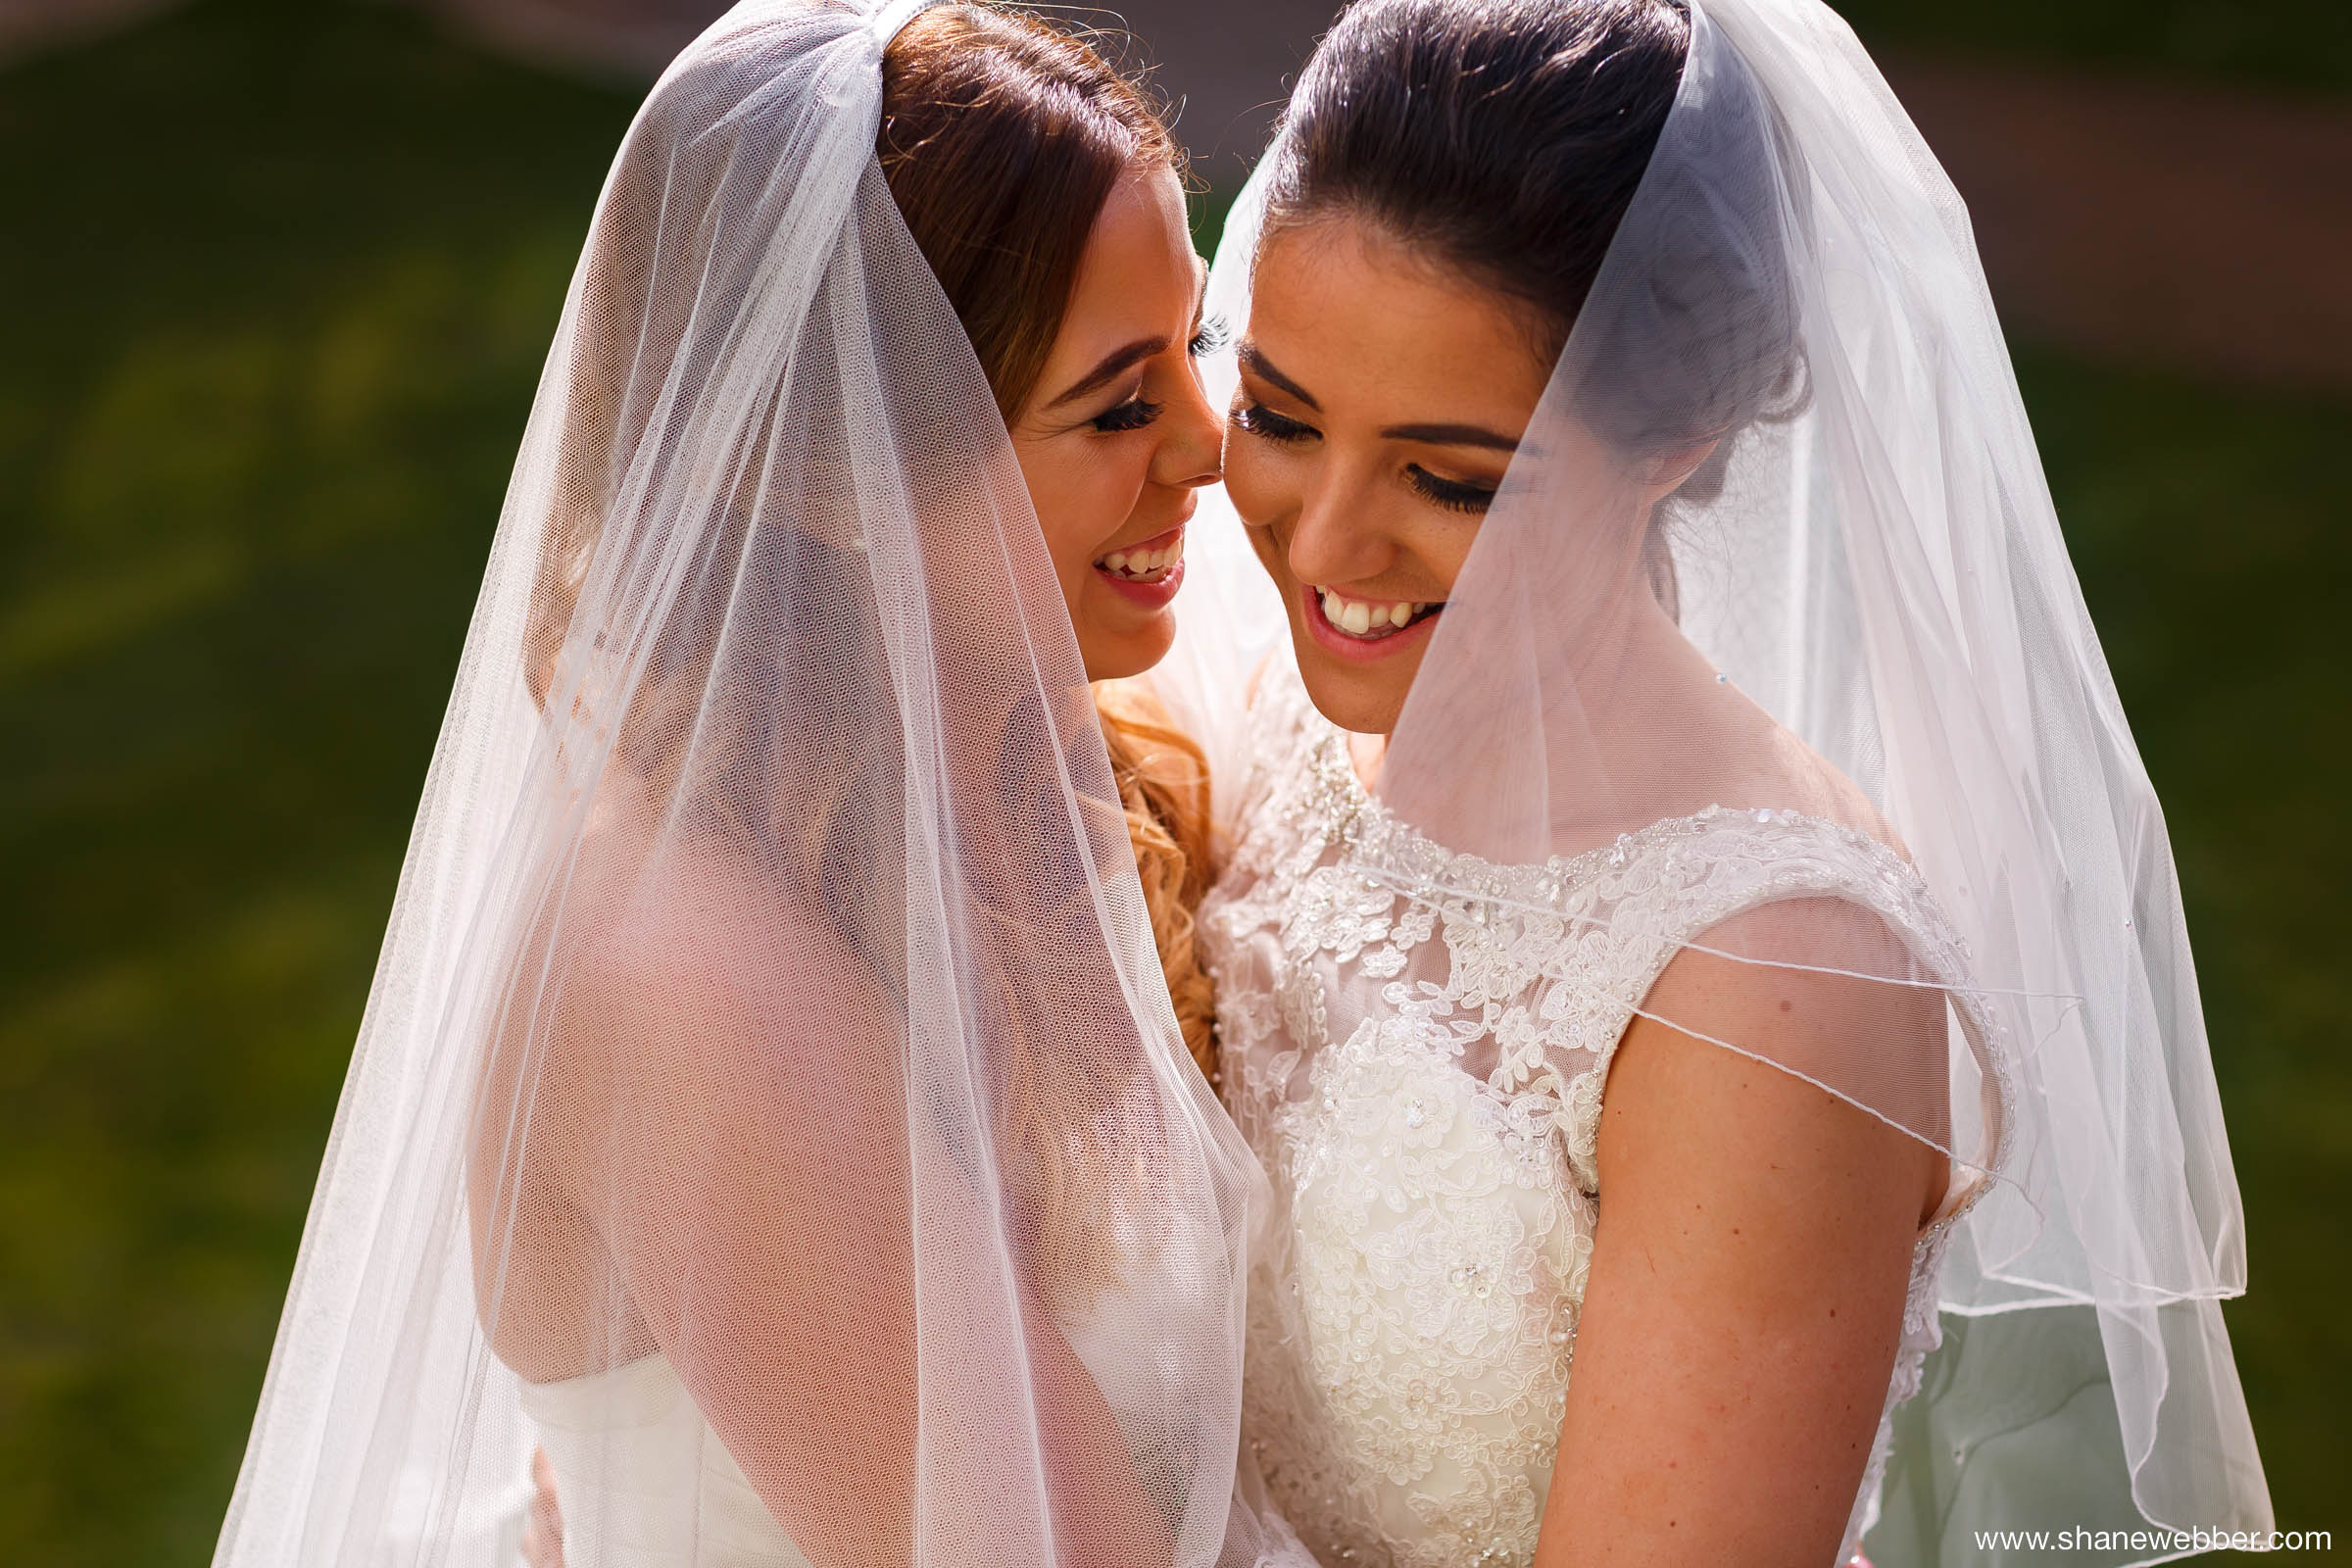 Same sex wedding photography of two brides